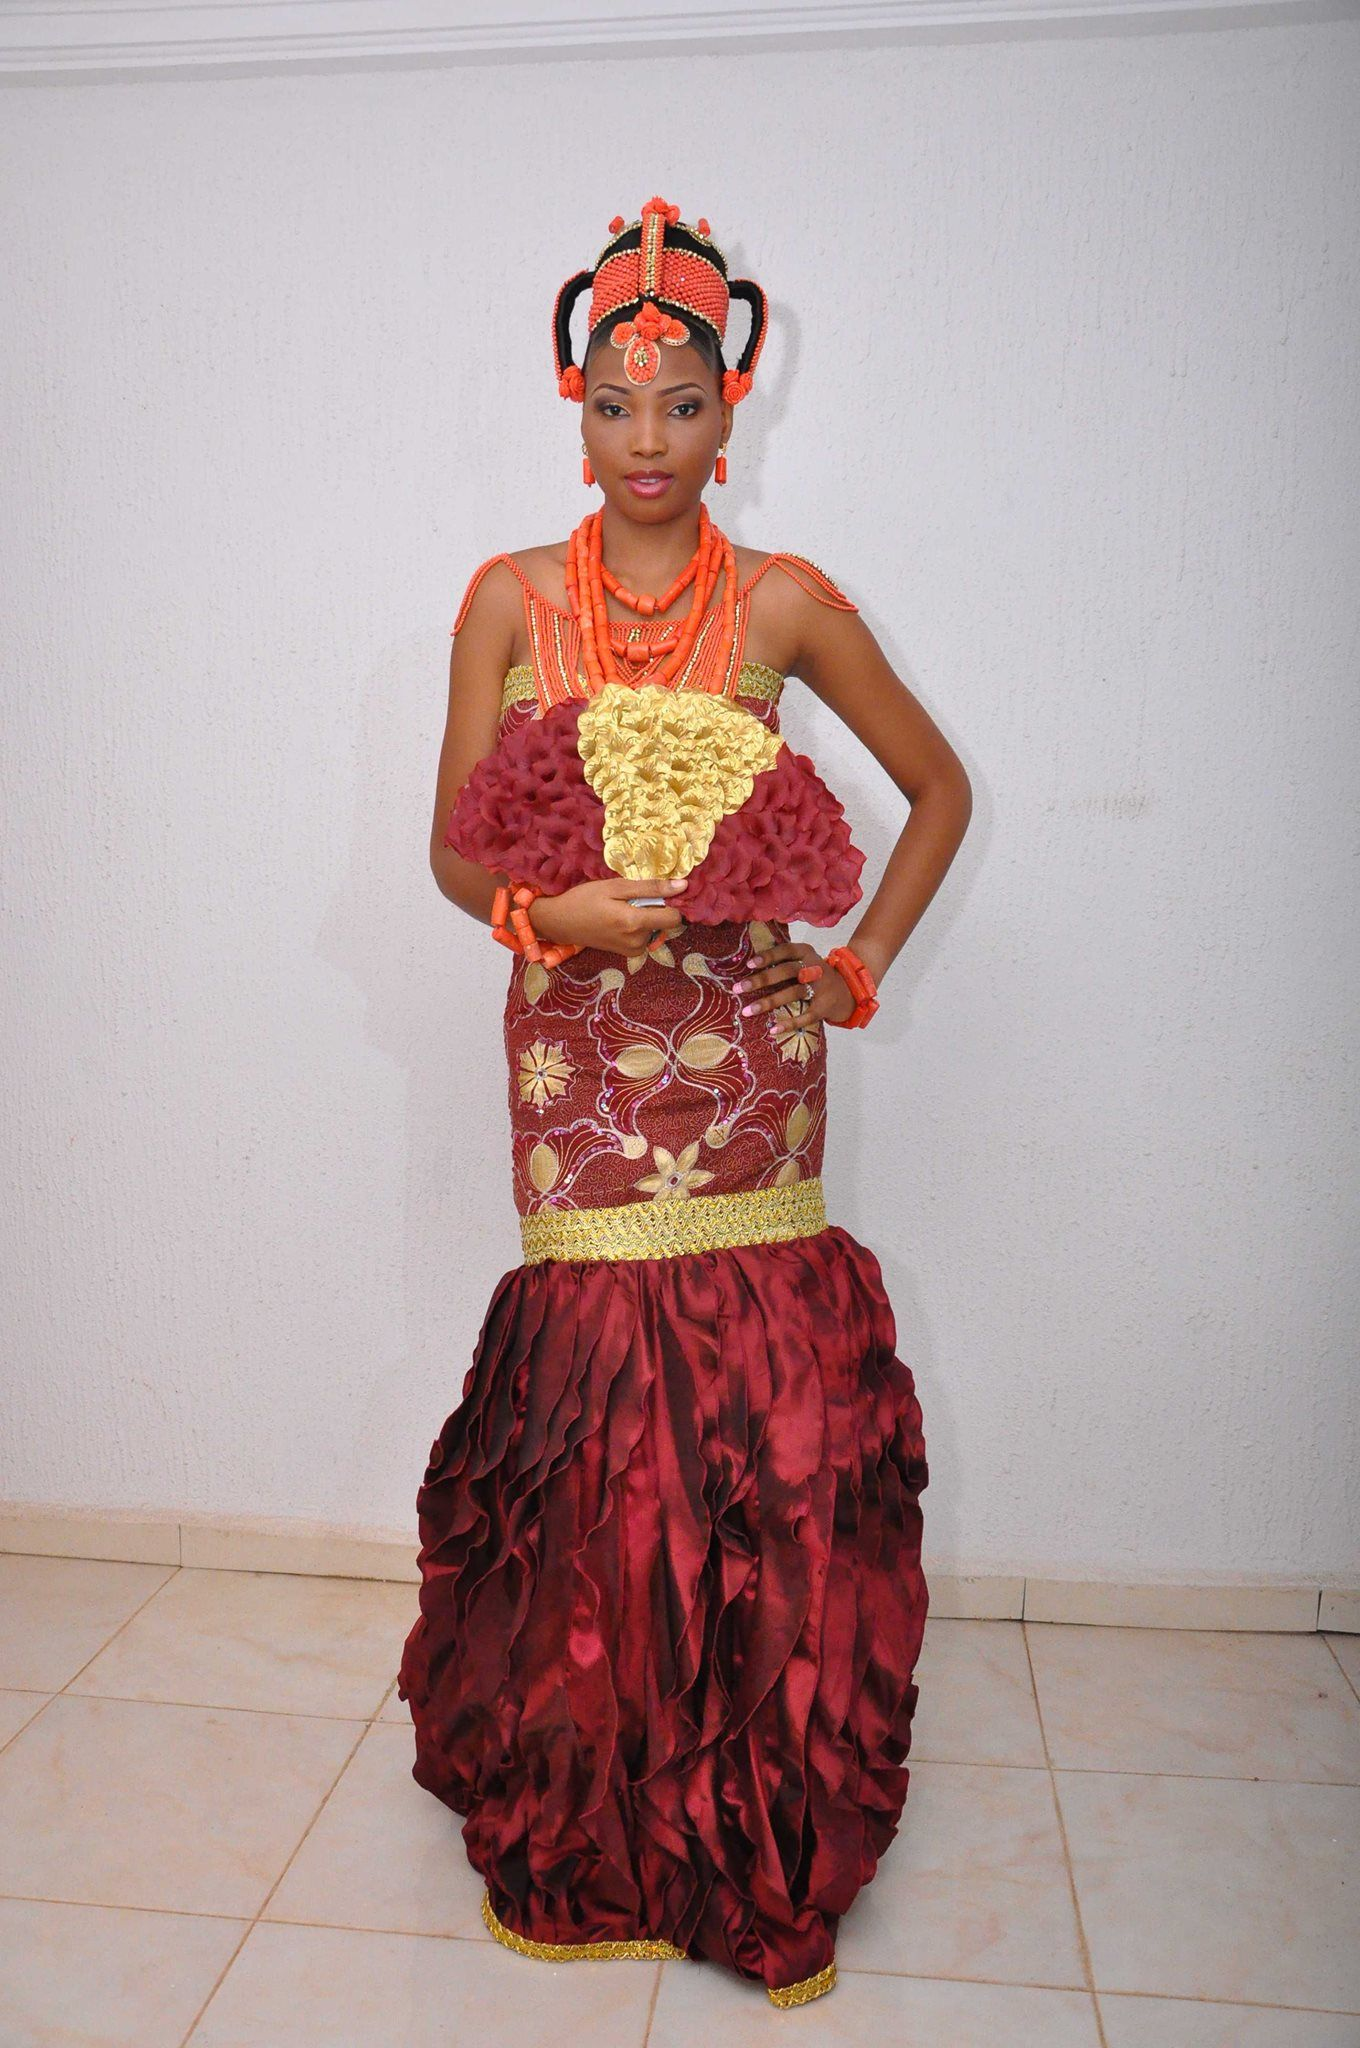 My cousin amaka in traditional bridal wear coral beads and fan